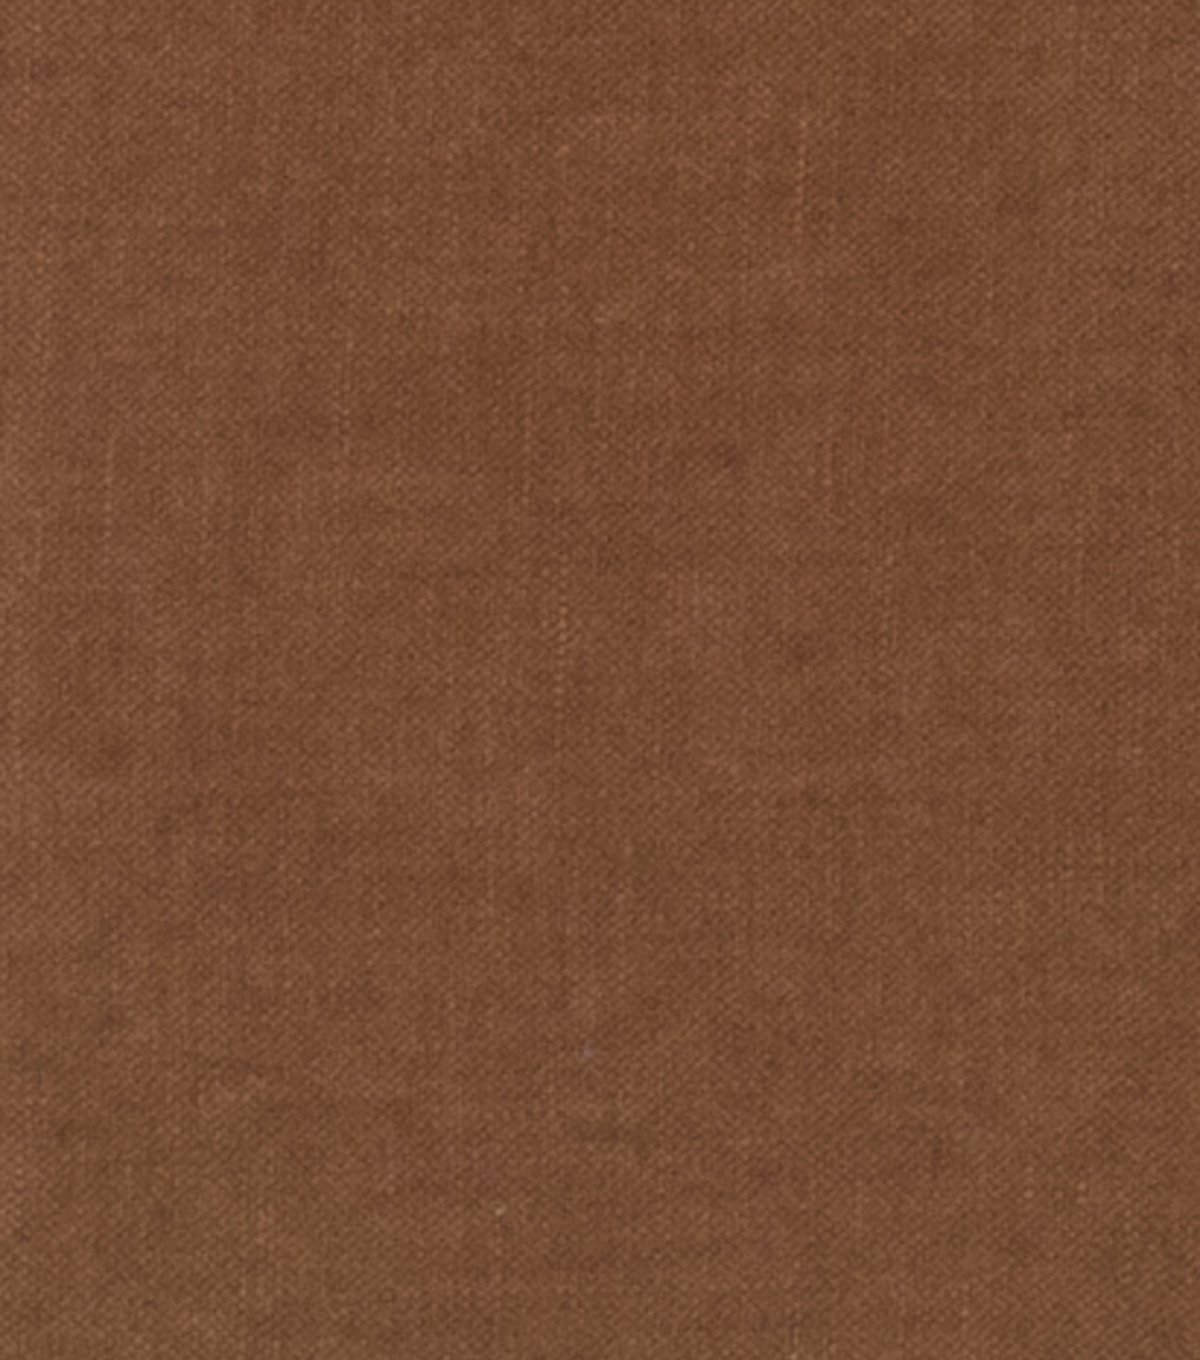 "Home Decor 8""x8"" Fabric Swatch-Signature Series Rockford Linen Tobacco"